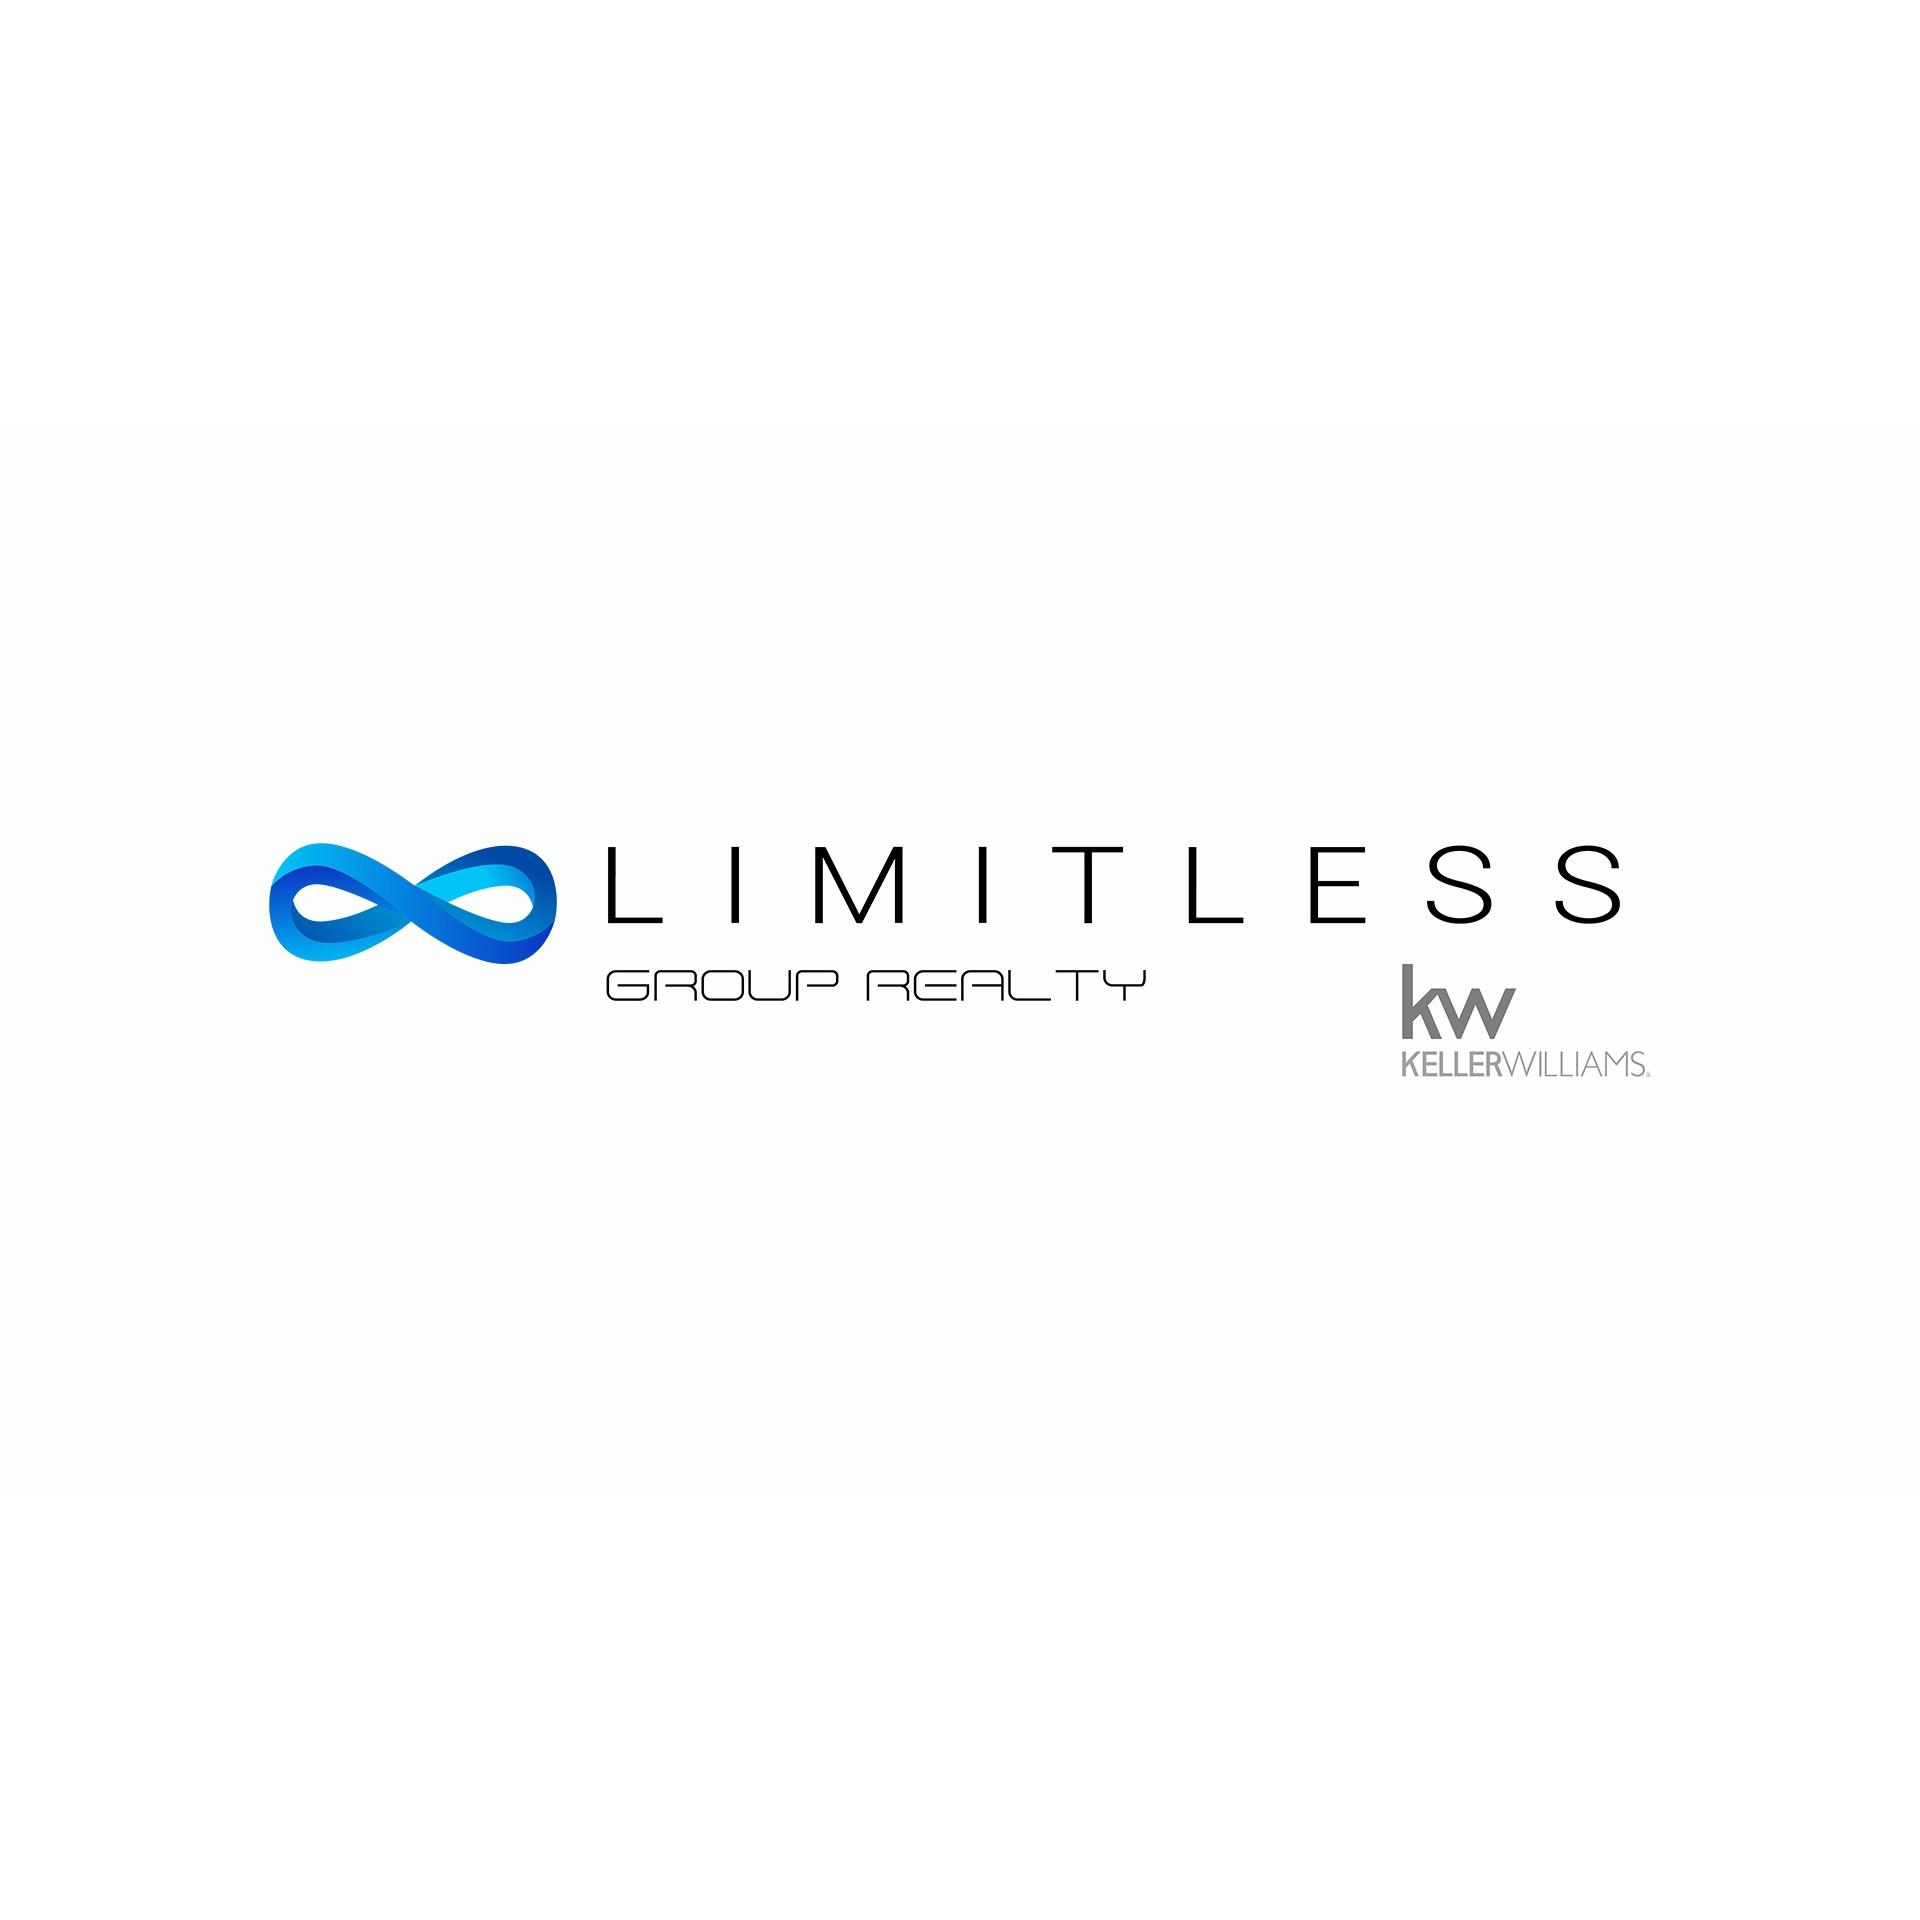 Limitless Group Realty